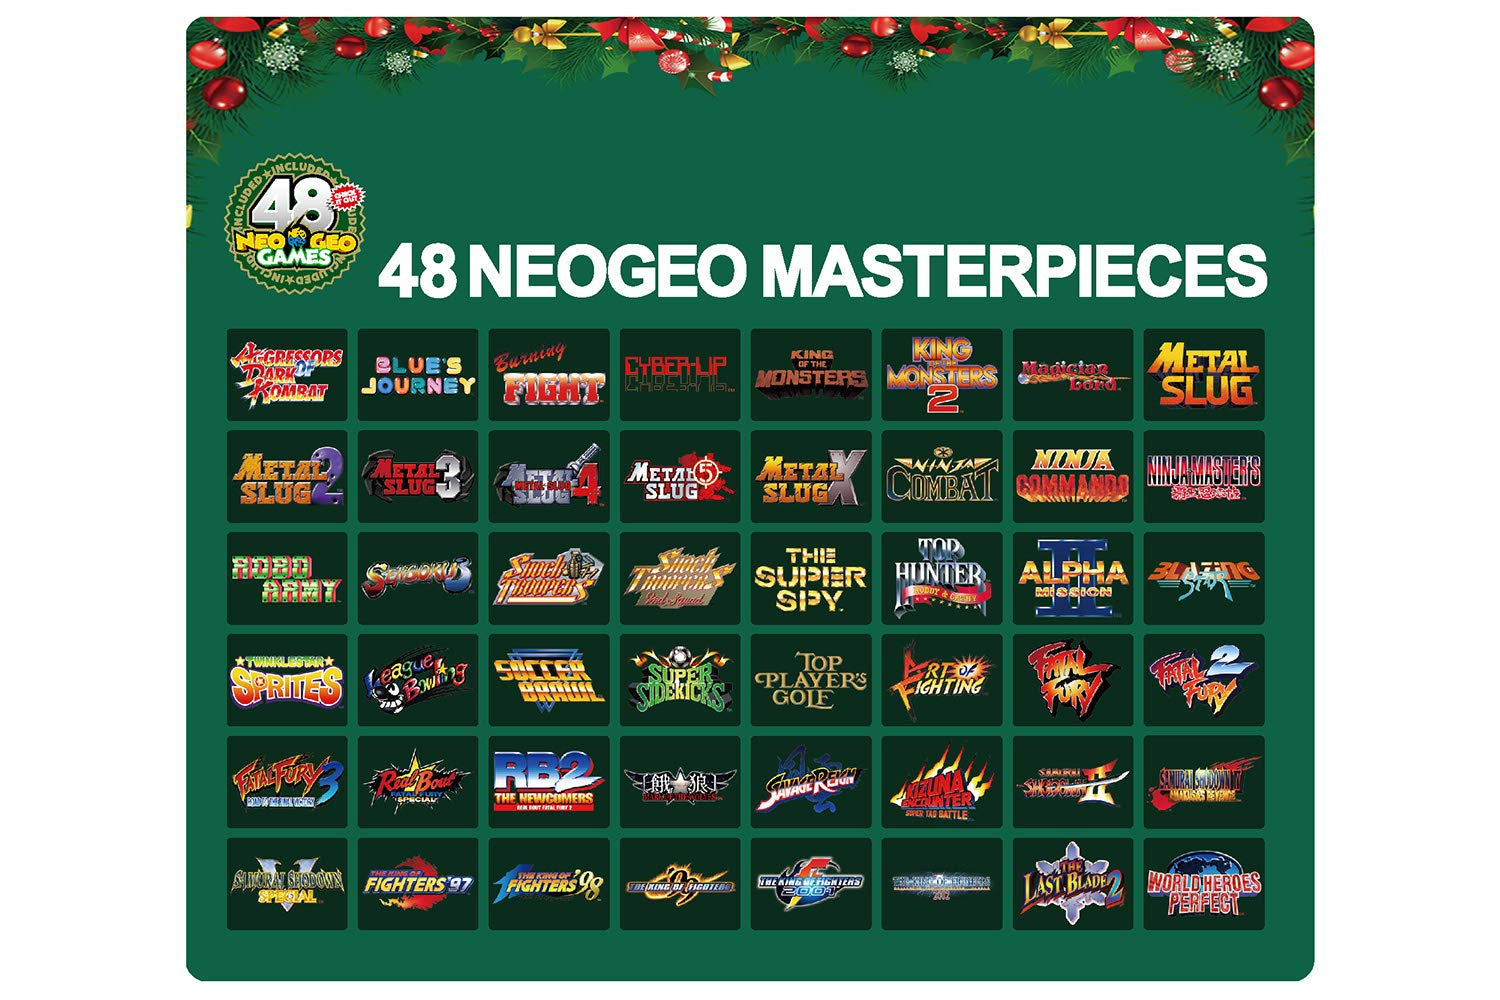 NEOGEO mini Christmas Limited Edition *(IN STOCK NOW! Ships USPS Priority Mail)* by SNK (Image #8)